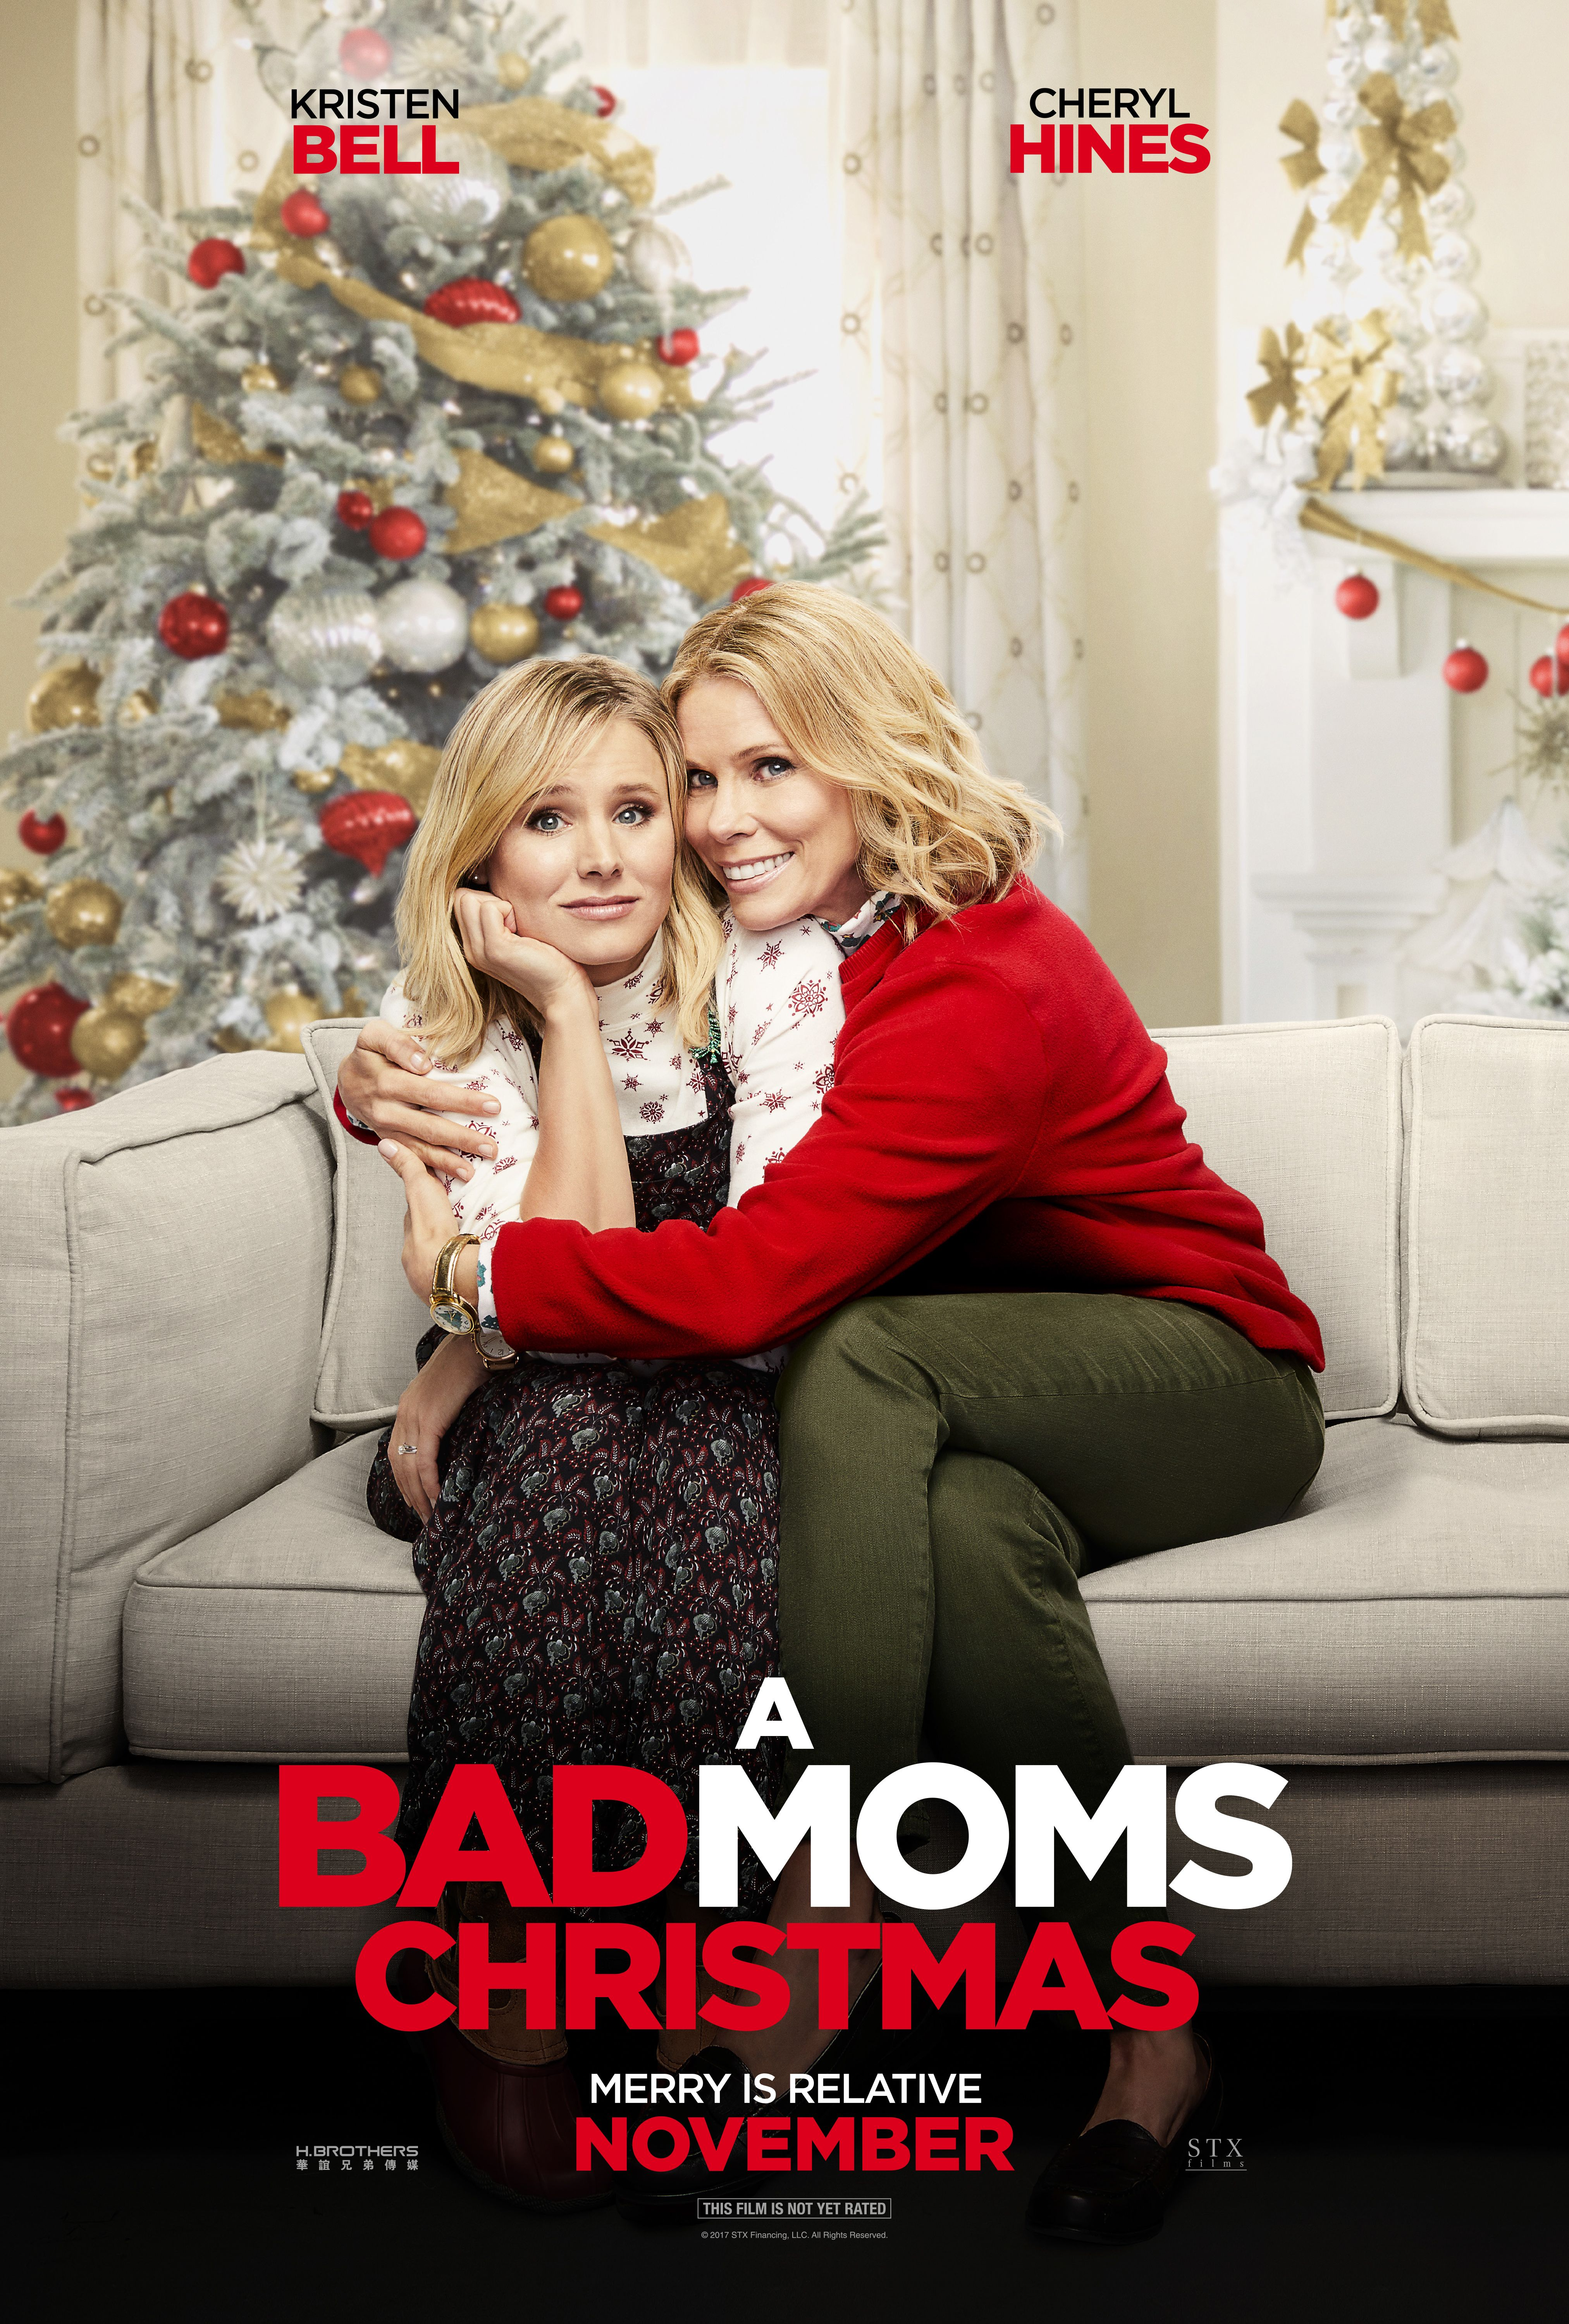 Pin On Bad Moms Official